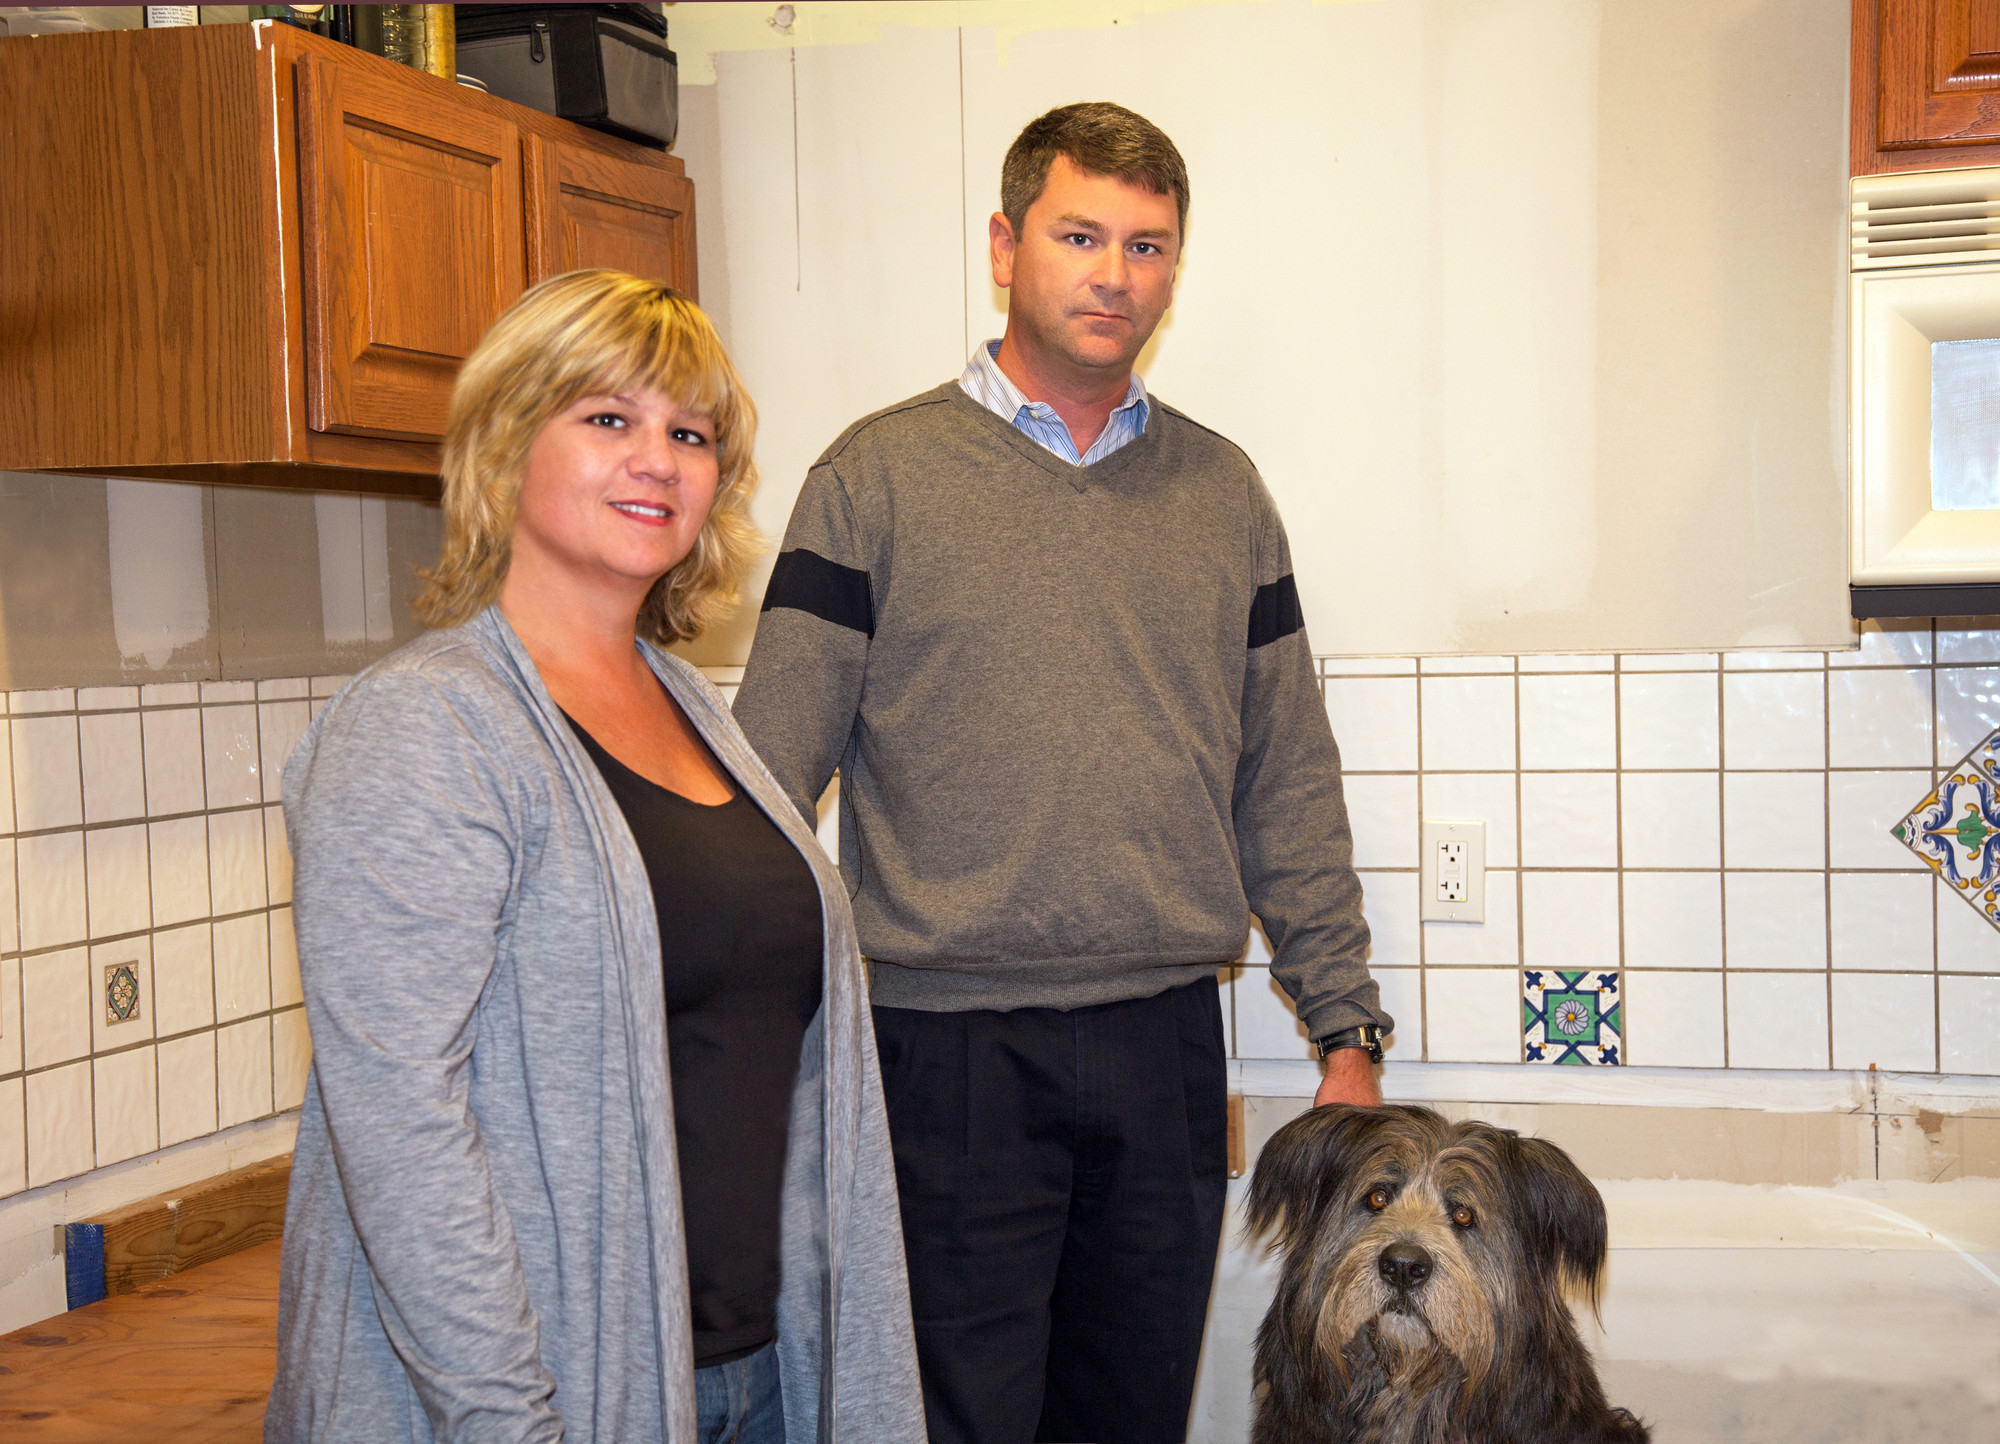 Kristie and Kevin Reilly with their dog., Marley, in their Barnes Street home.They are hoping that NY Rising funding will help them elevate their home.